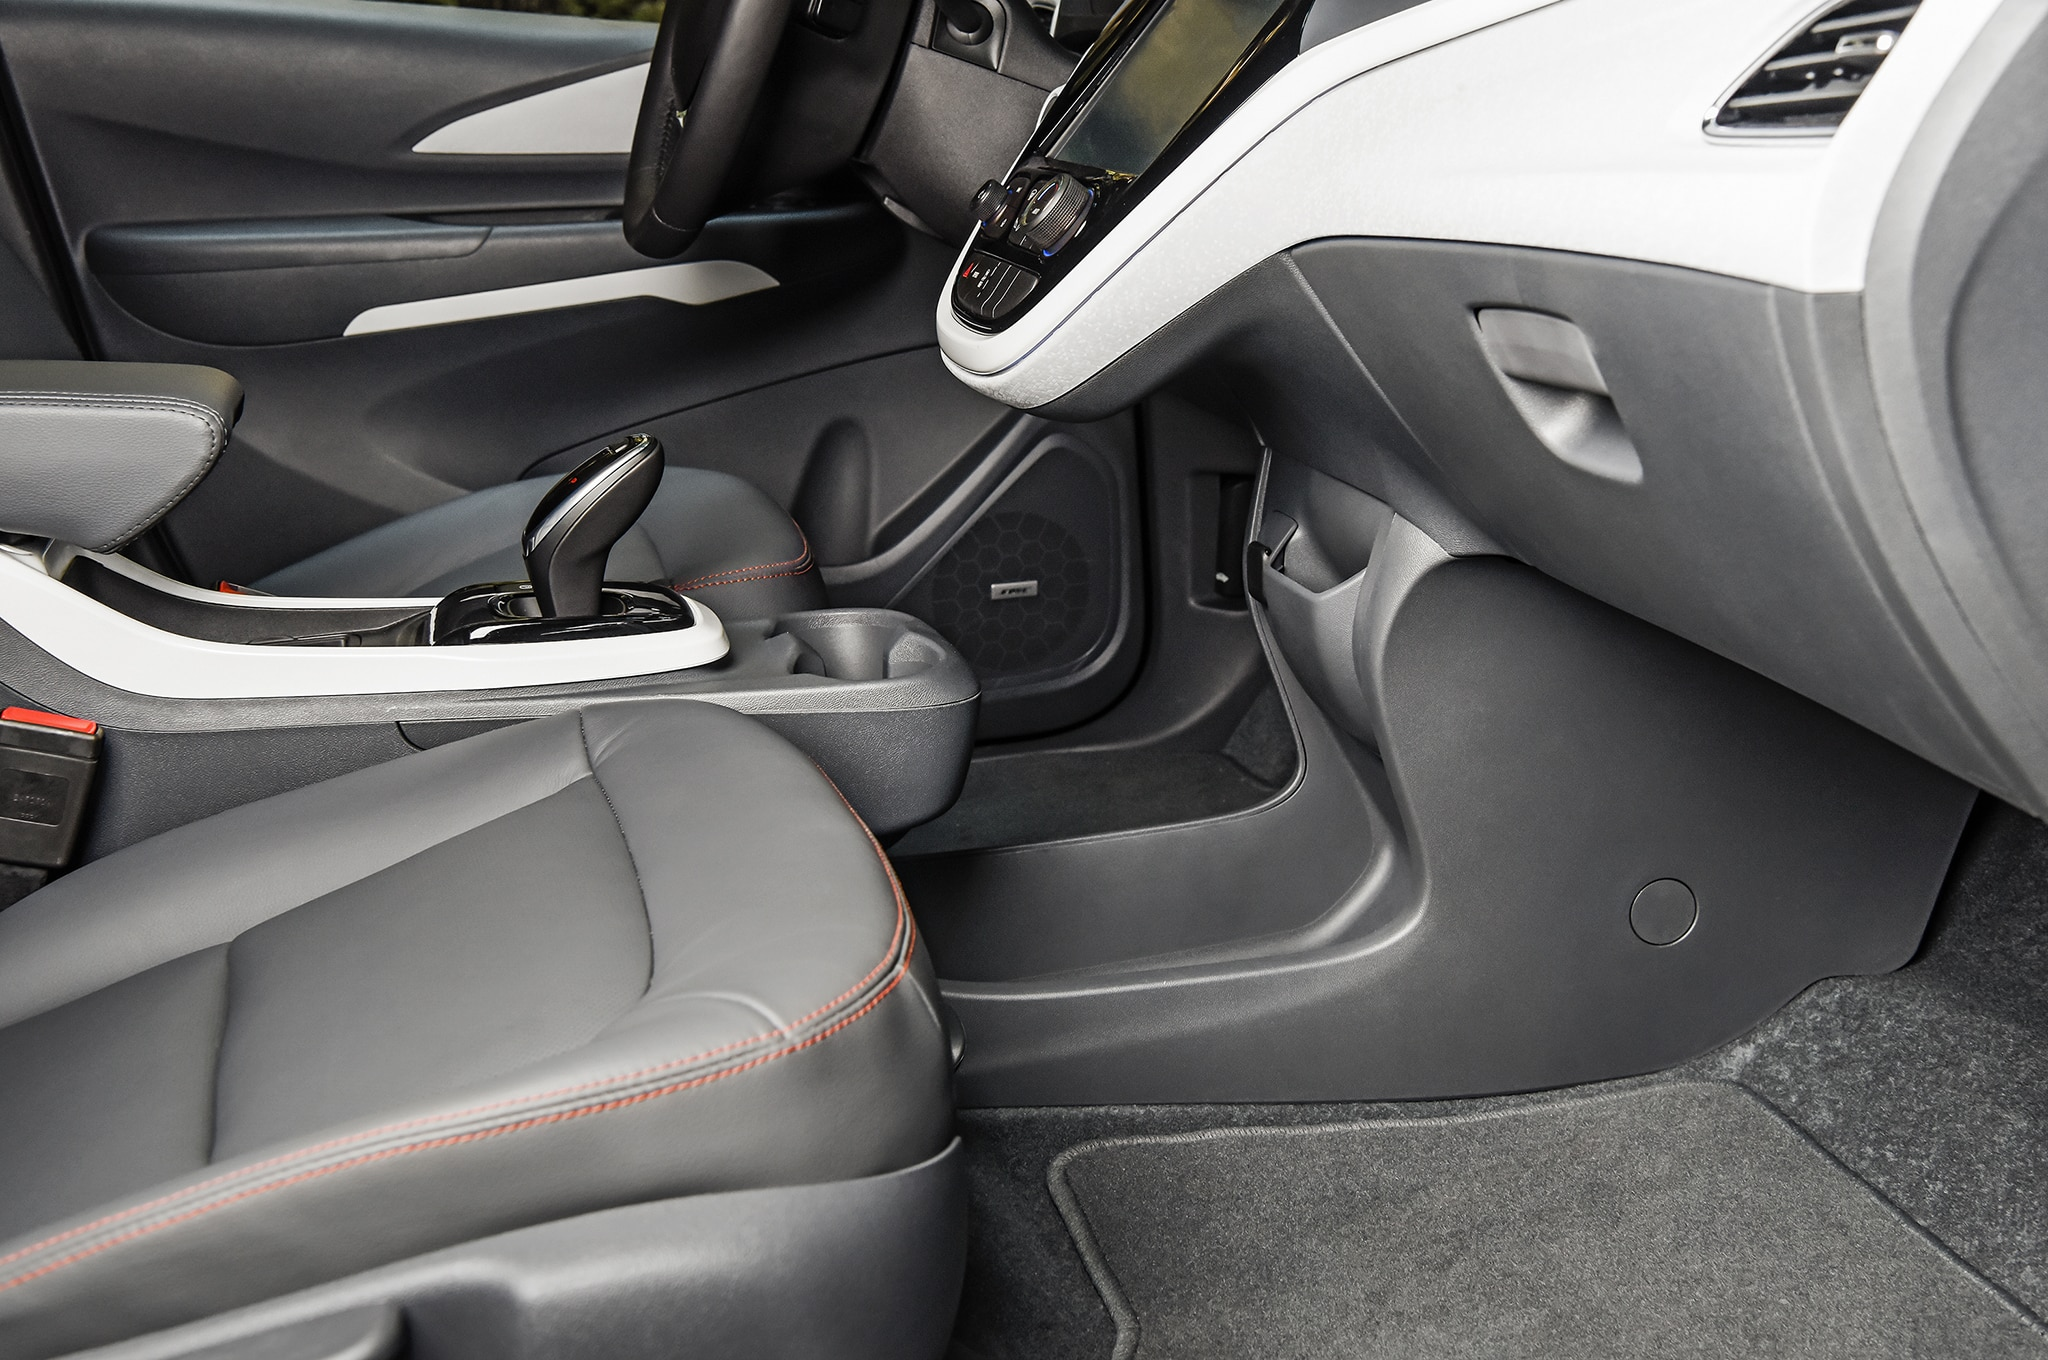 2017 Chevrolet Bolt EV Interior 02 1